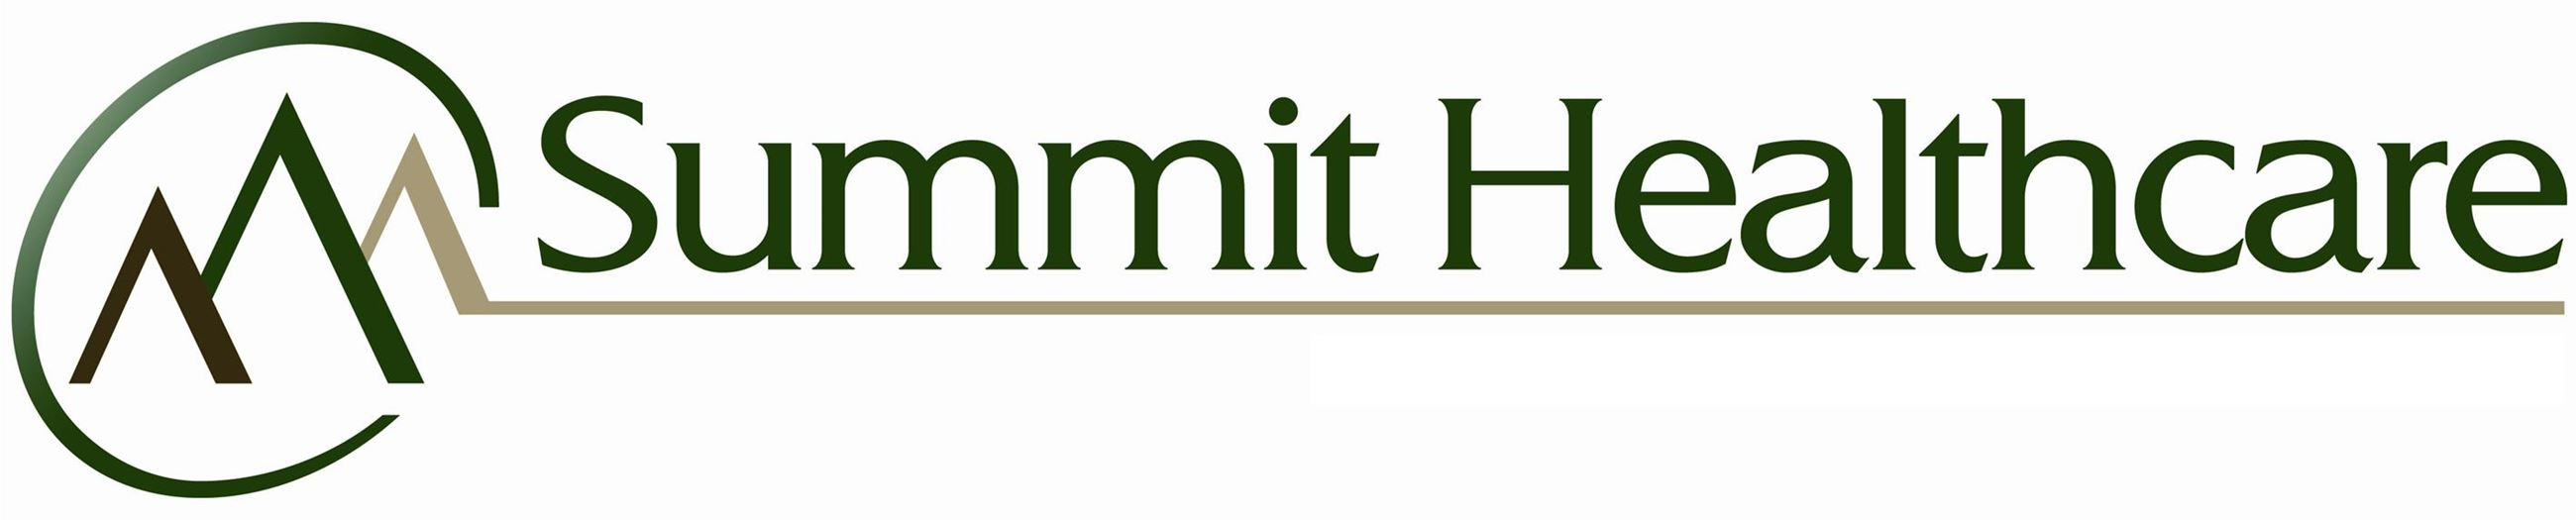 Summit Healthcare Opens in new window